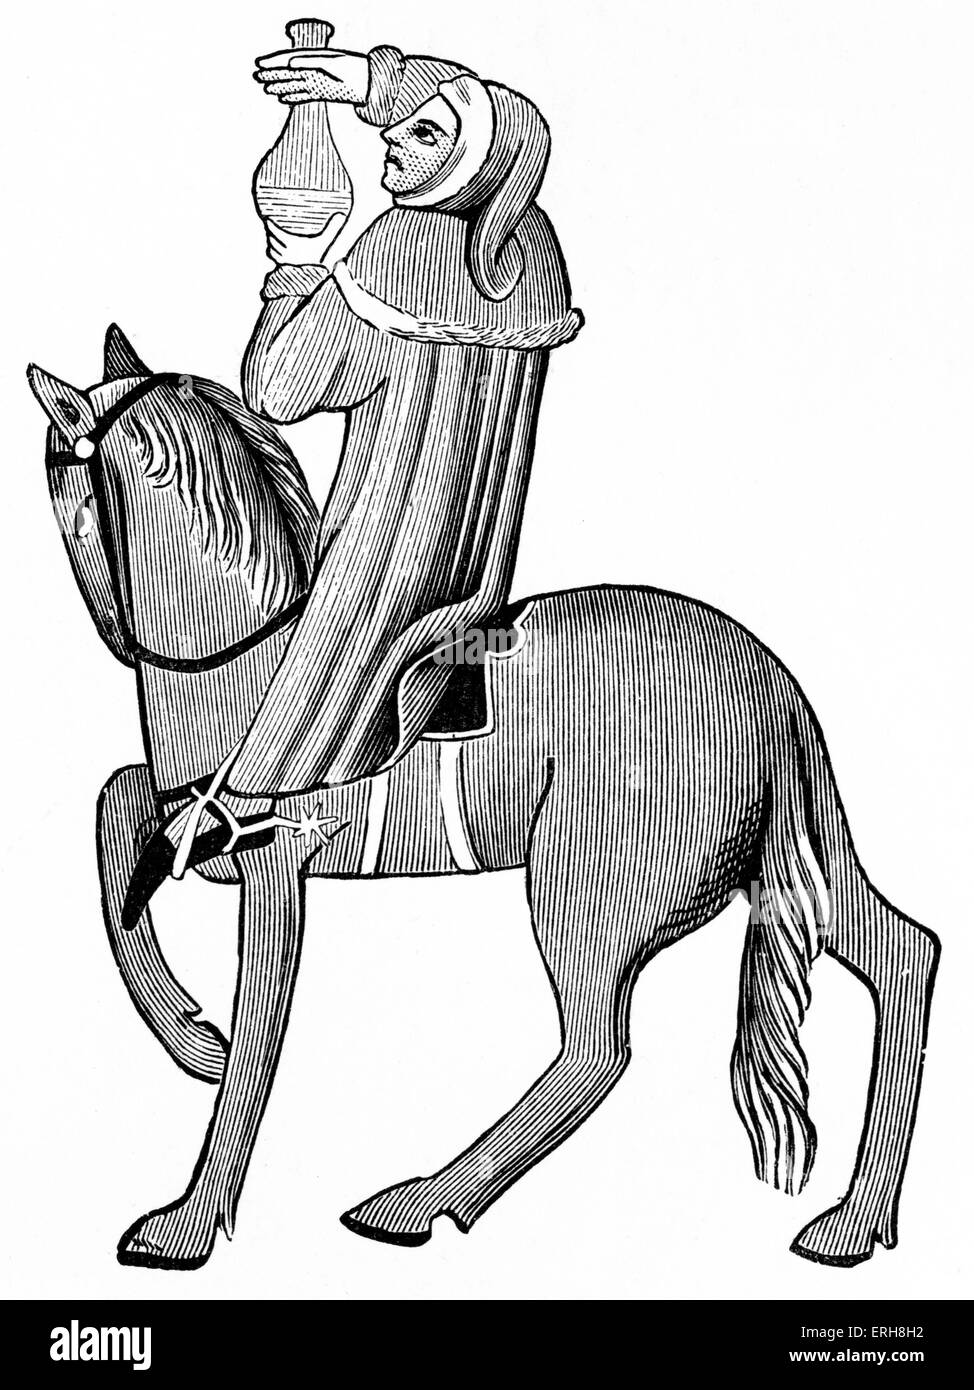 Geoffrey Chaucer ' s Canterbury Tales - The Doctor of Physic on horseback.  English poet, c. 1343-1400. Ellesmere - Stock Image